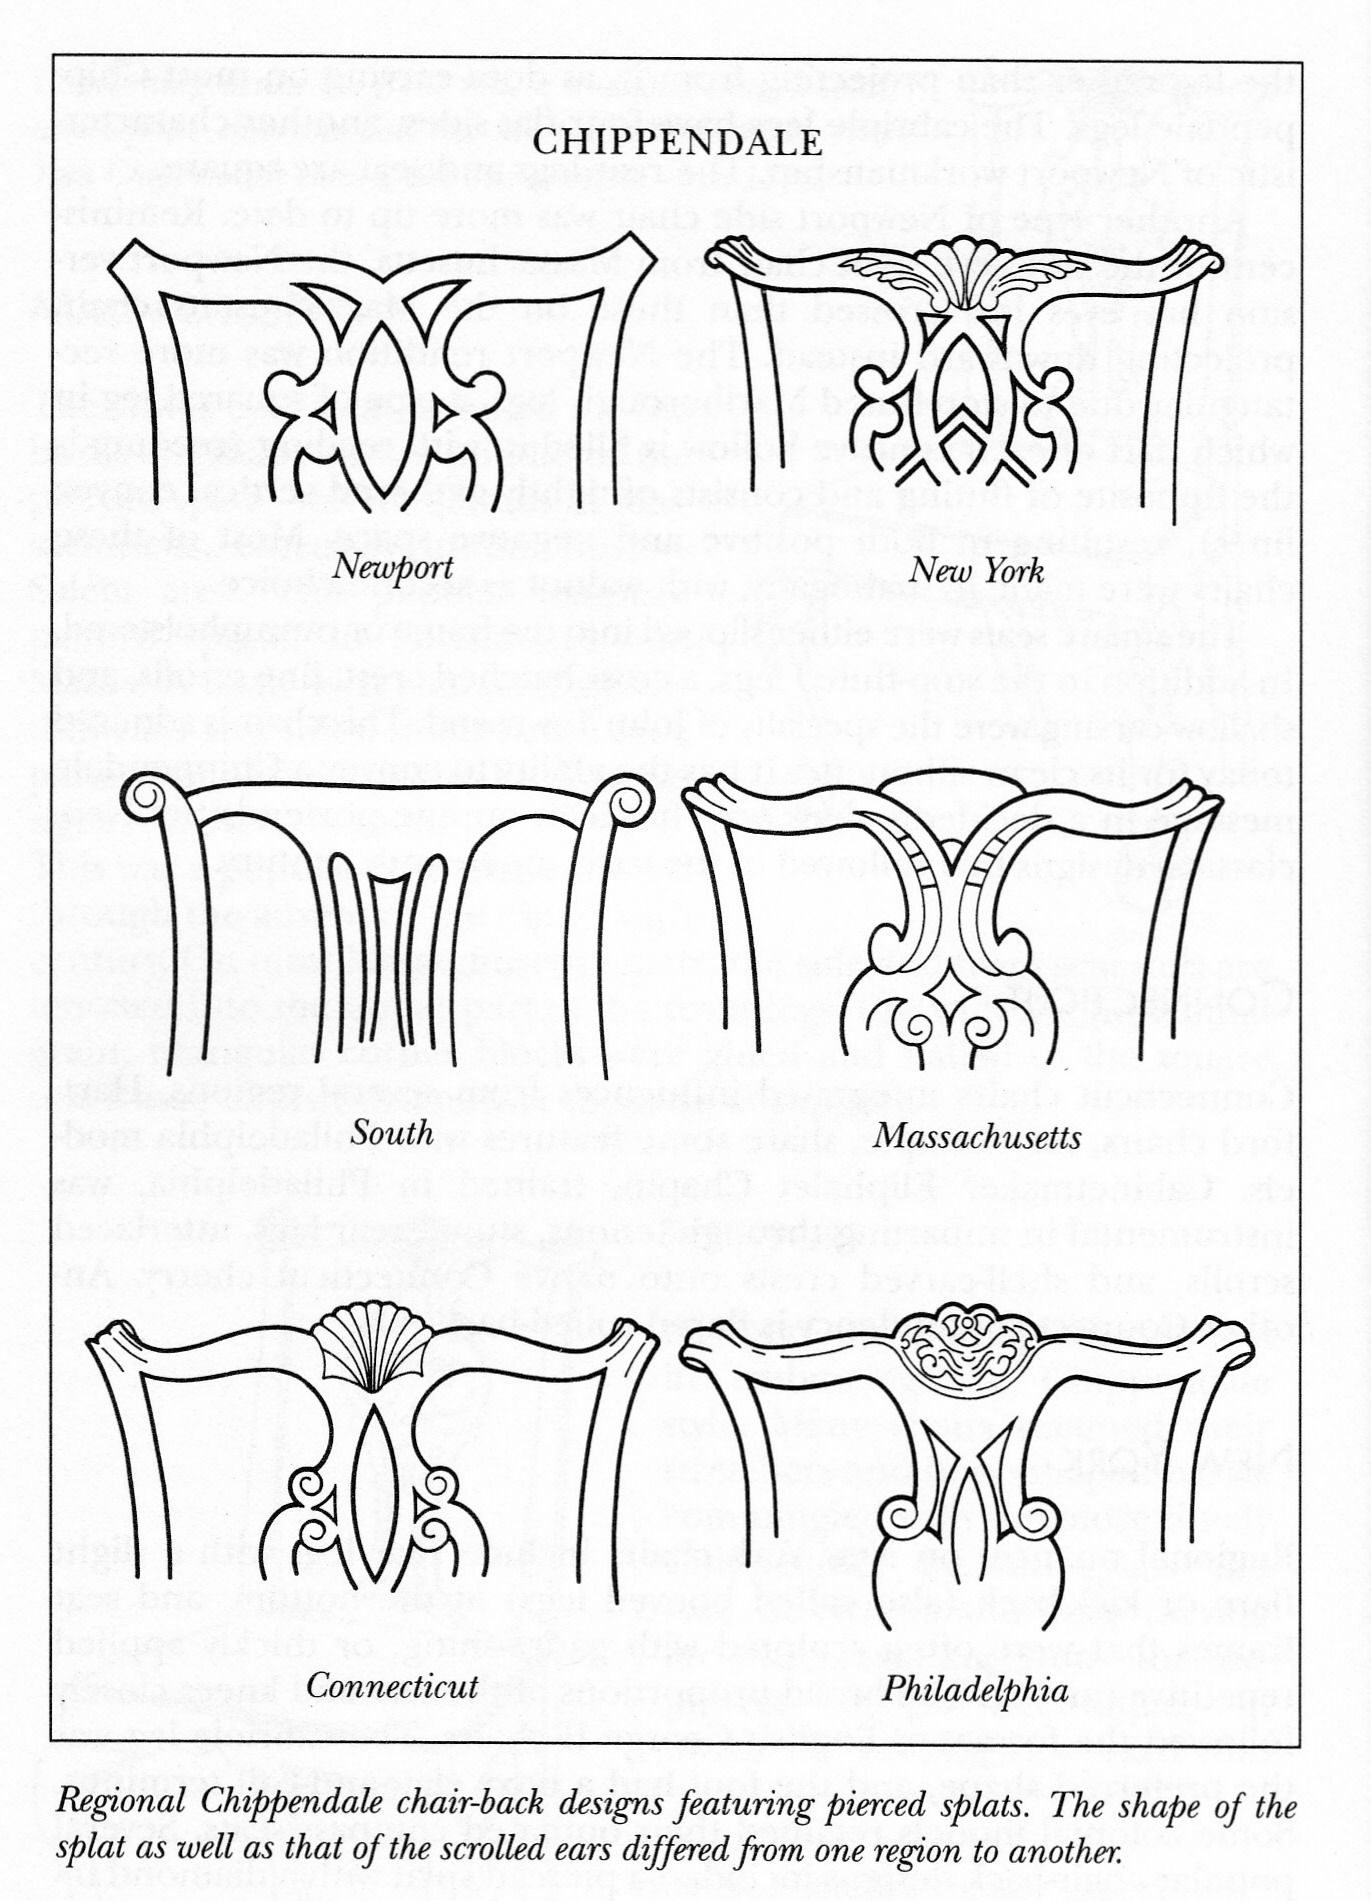 Chippendale Chair Back Designs Furniture Styles Guide Chippendale Furniture Furniture Design